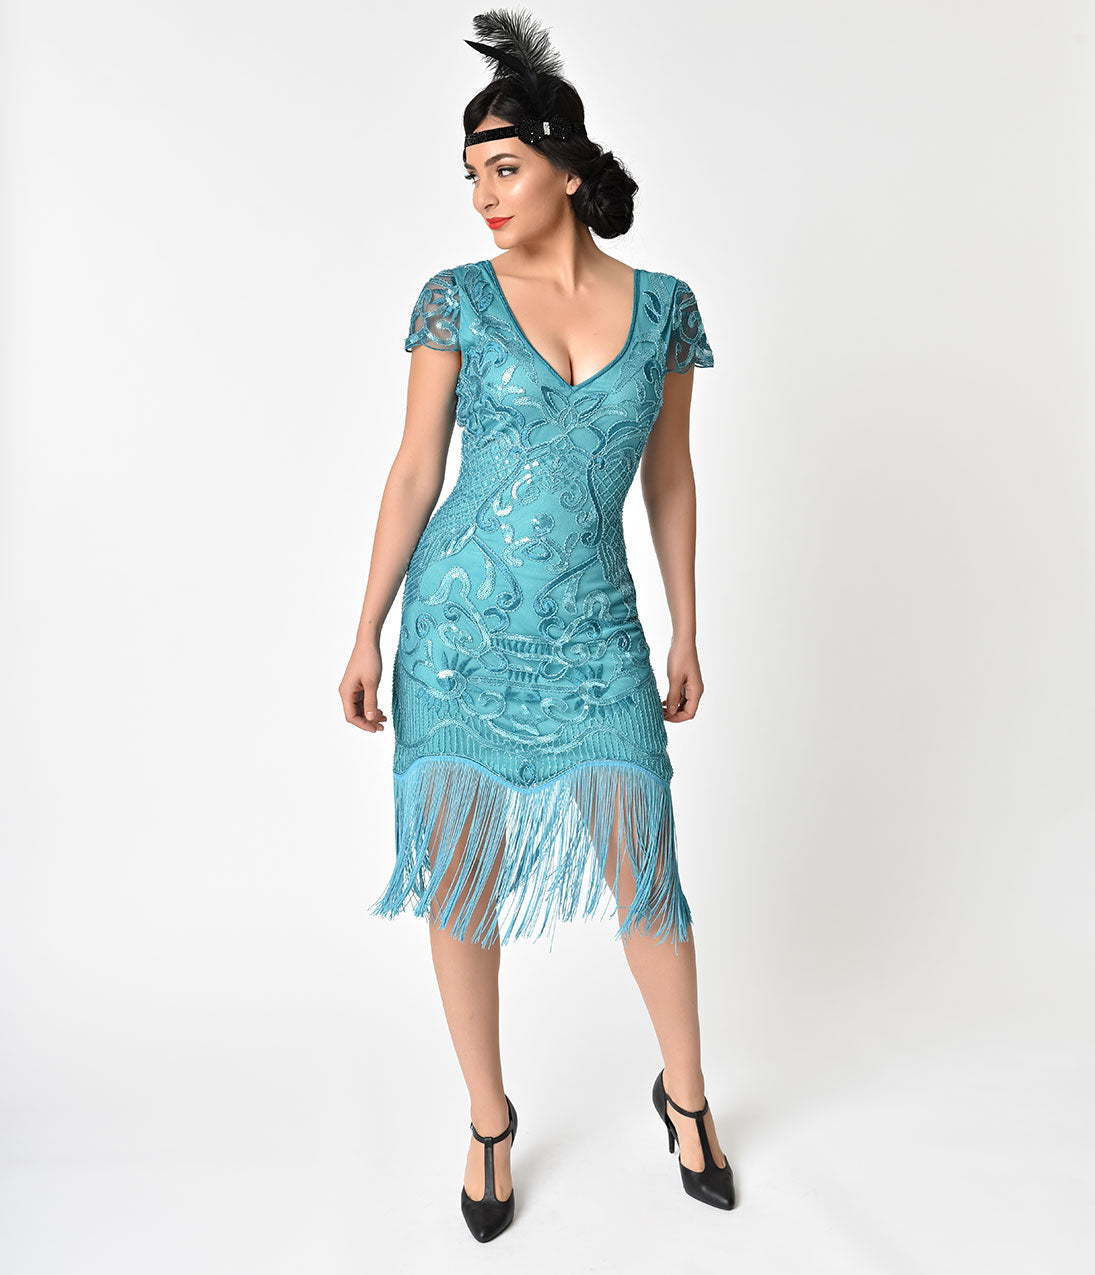 Roaring 20s Costumes- Flapper Costumes, Gangster Costumes 1920S Style Turquoise Beaded Fringe Aurore Flapper Dress $98.00 AT vintagedancer.com